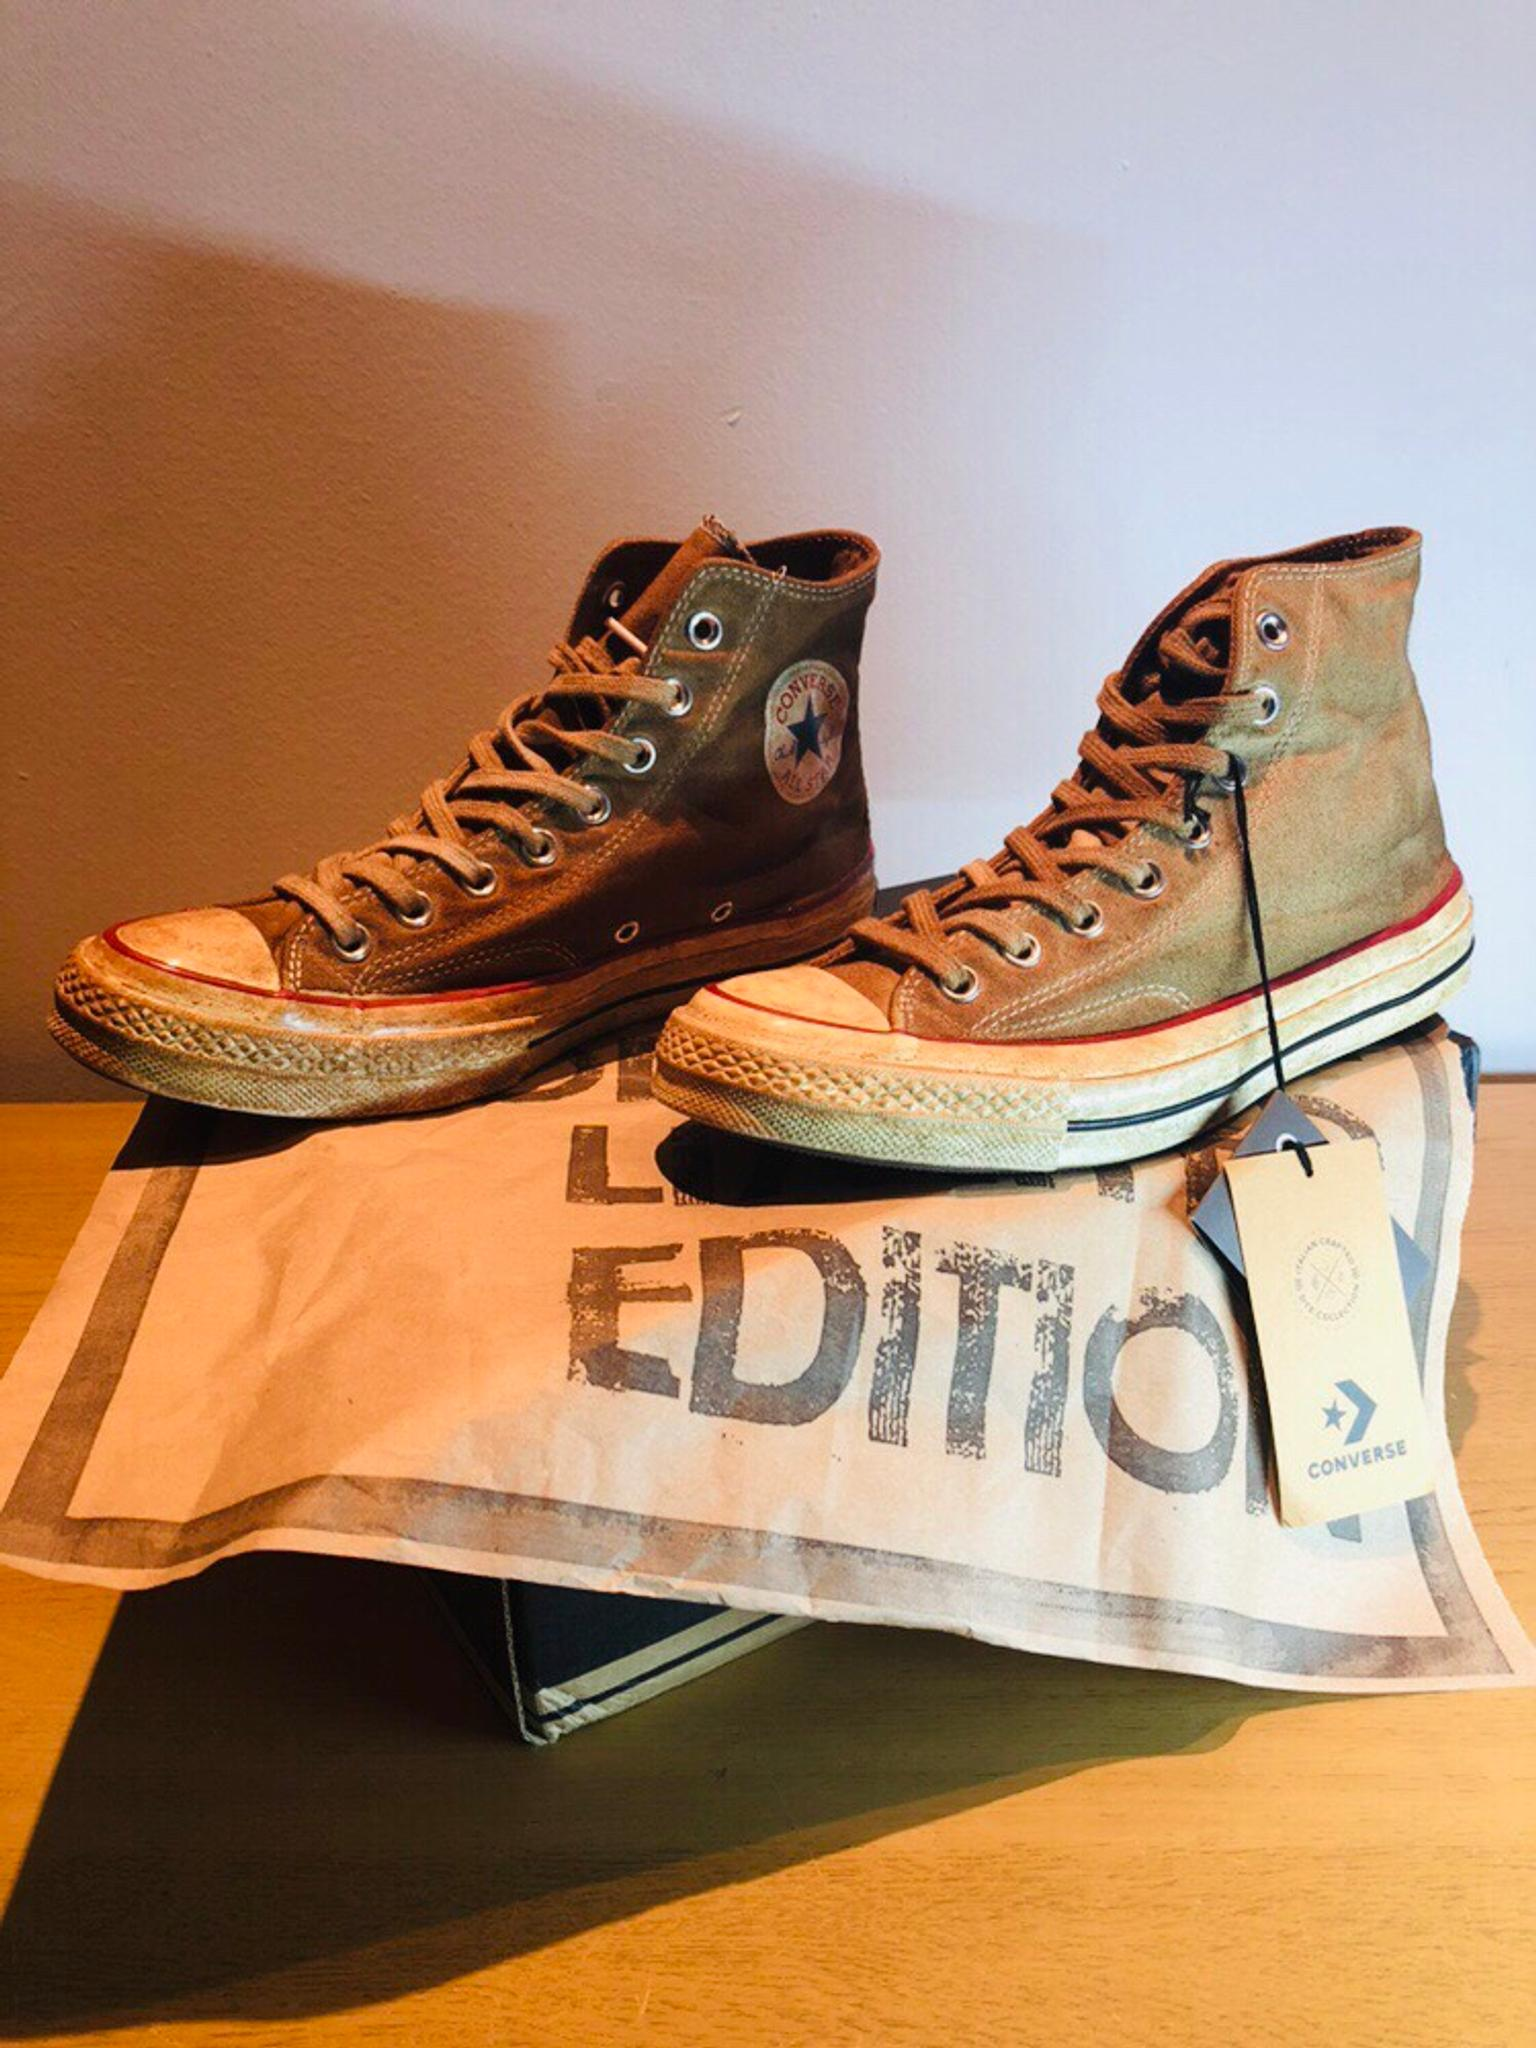 Brand new Converse Limited Edition